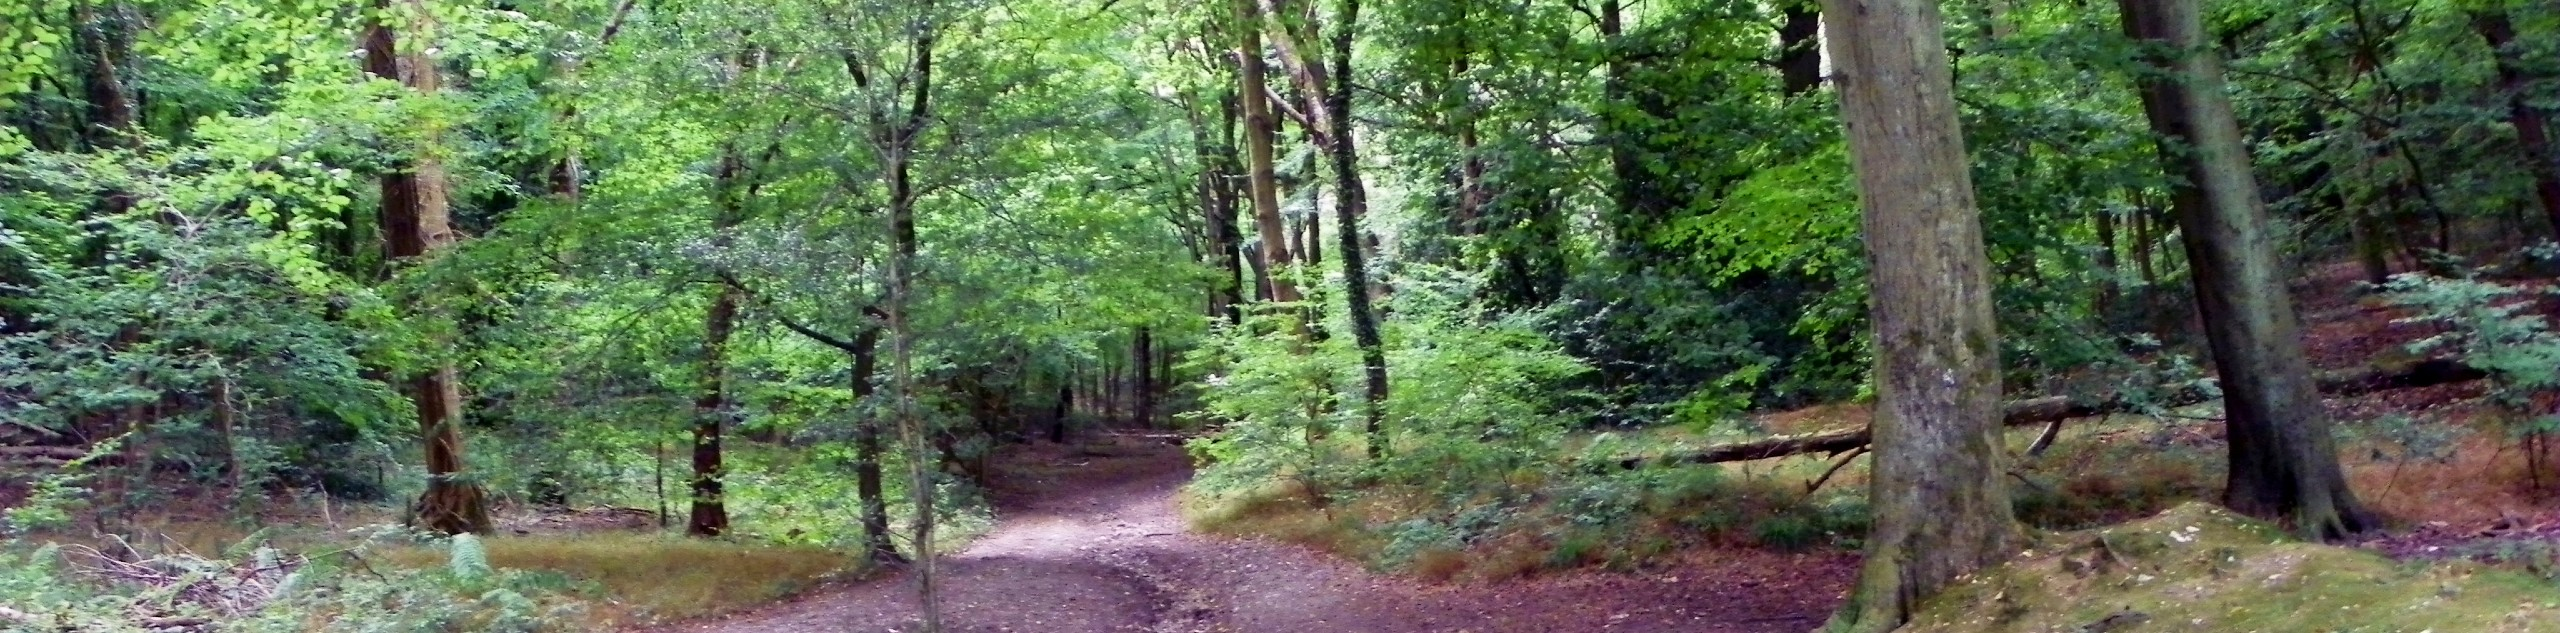 West Wycombe Woods Circular